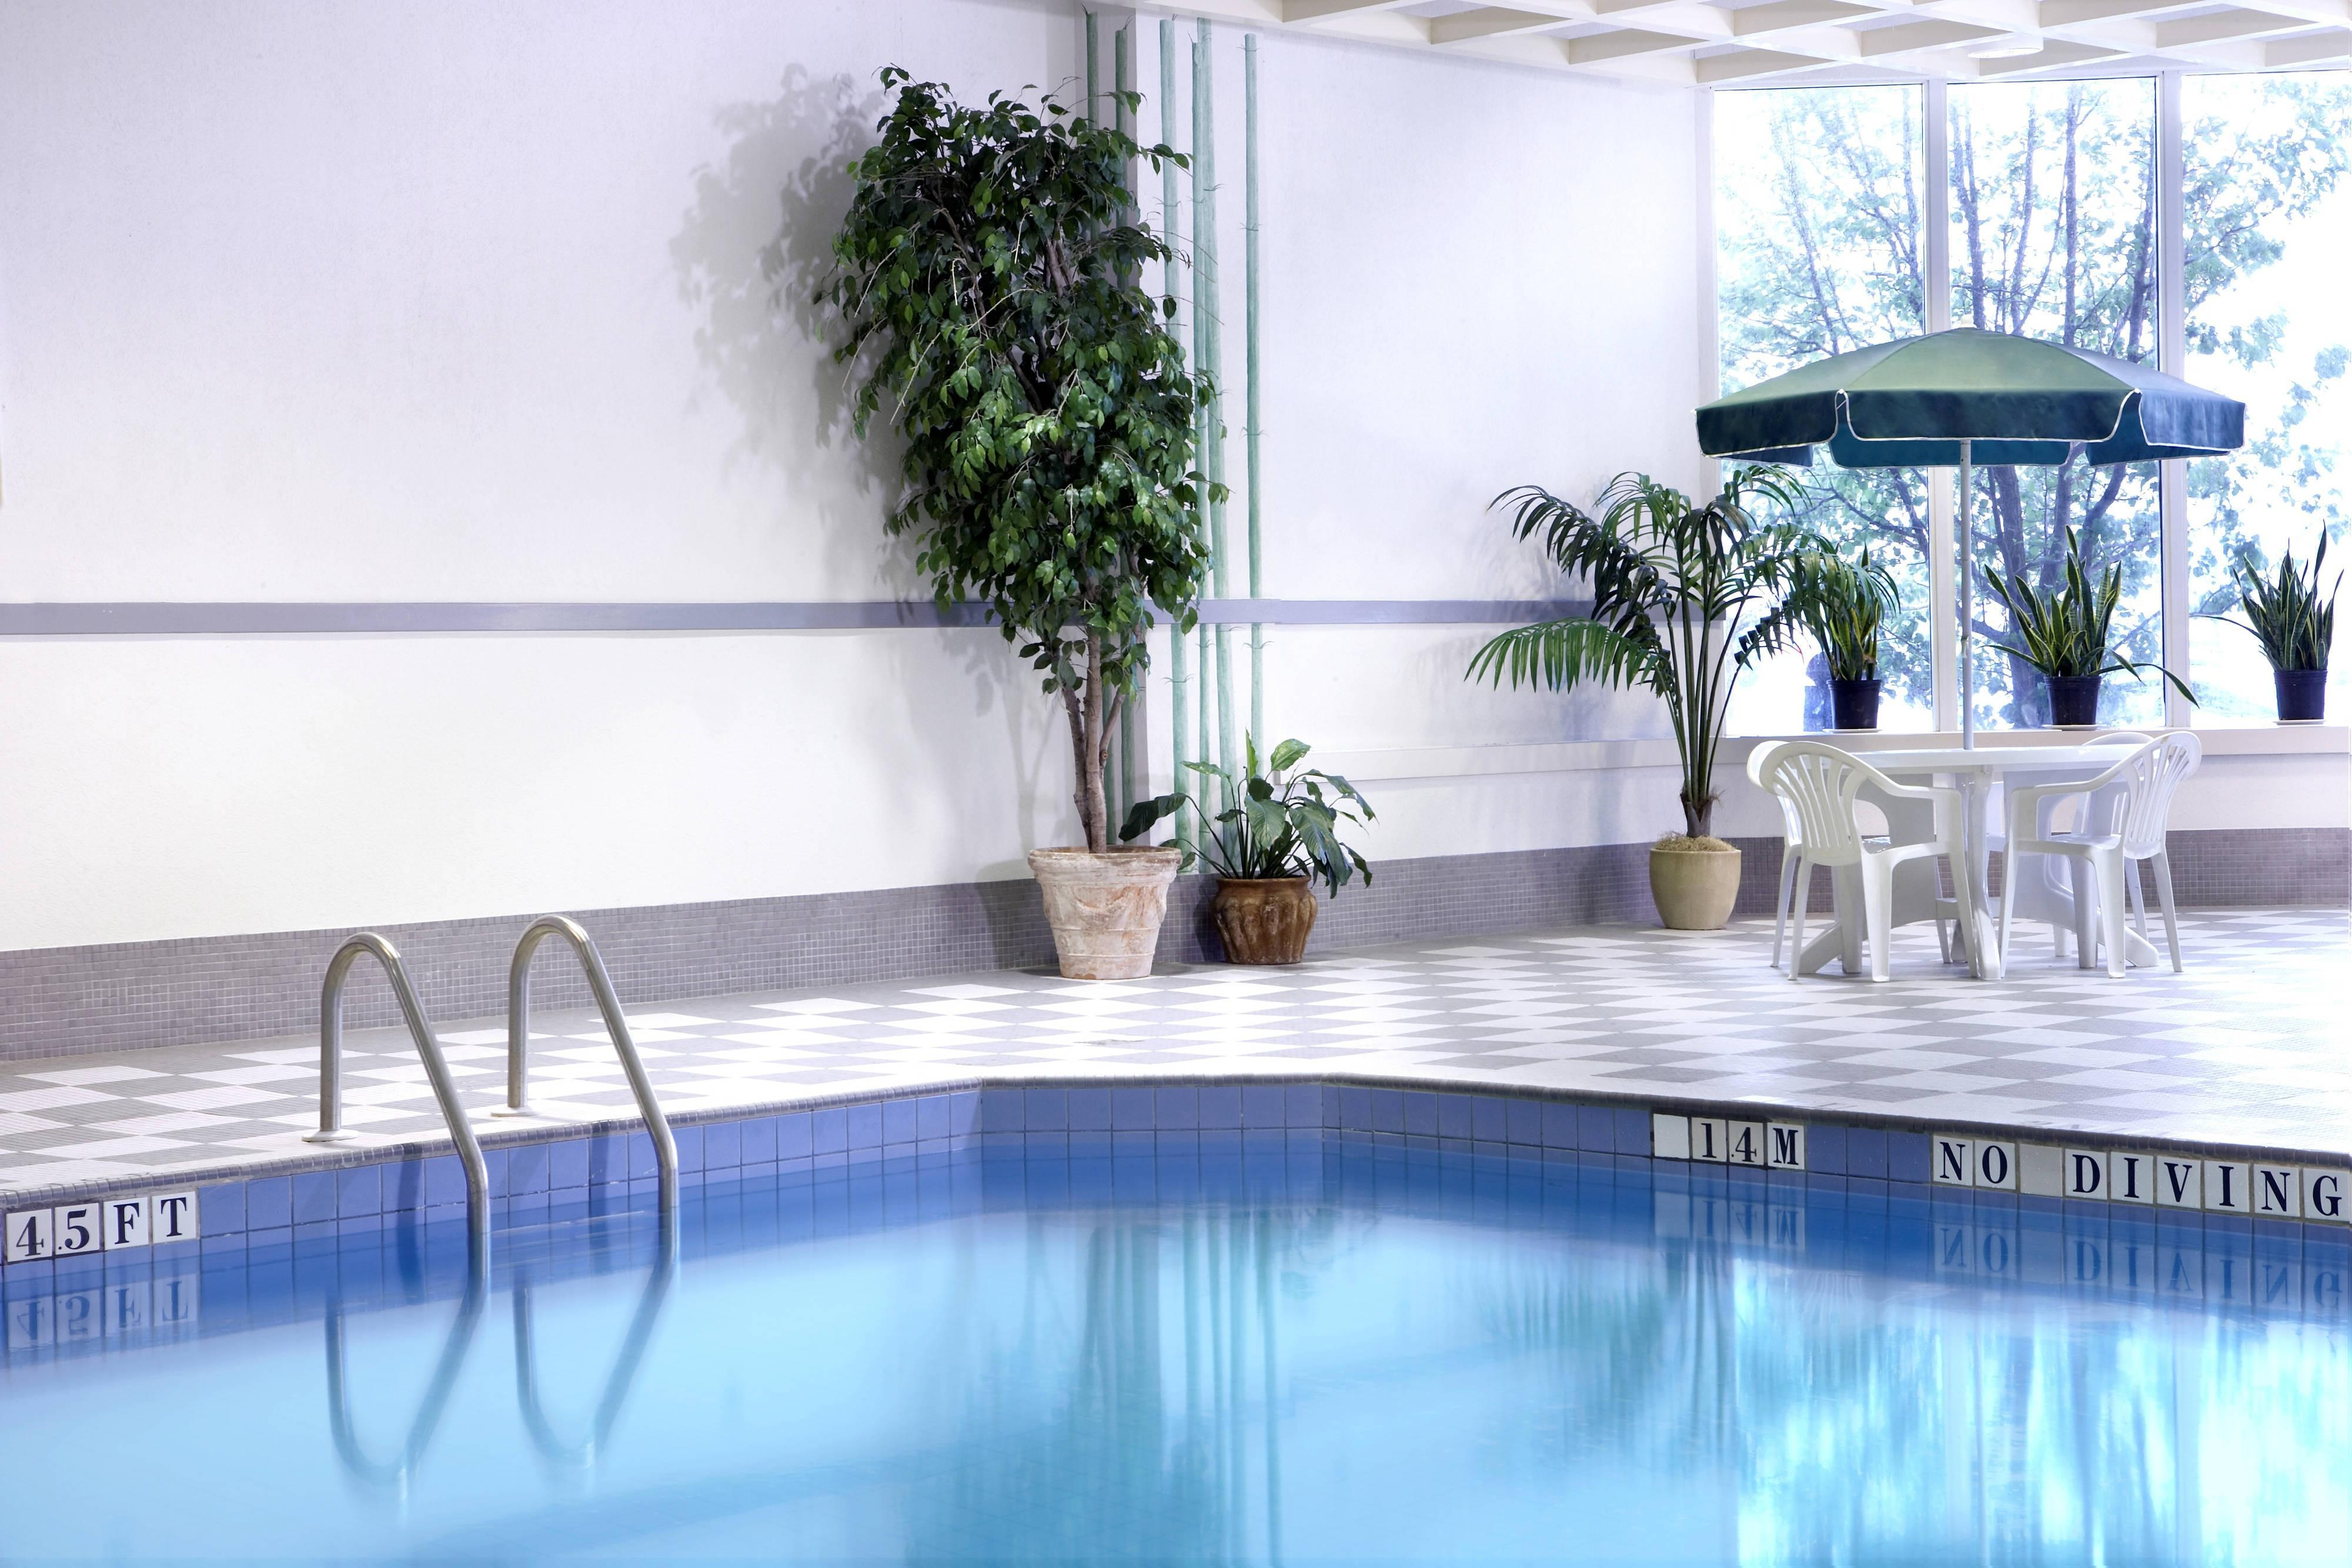 Fallsview hotel indoor pool